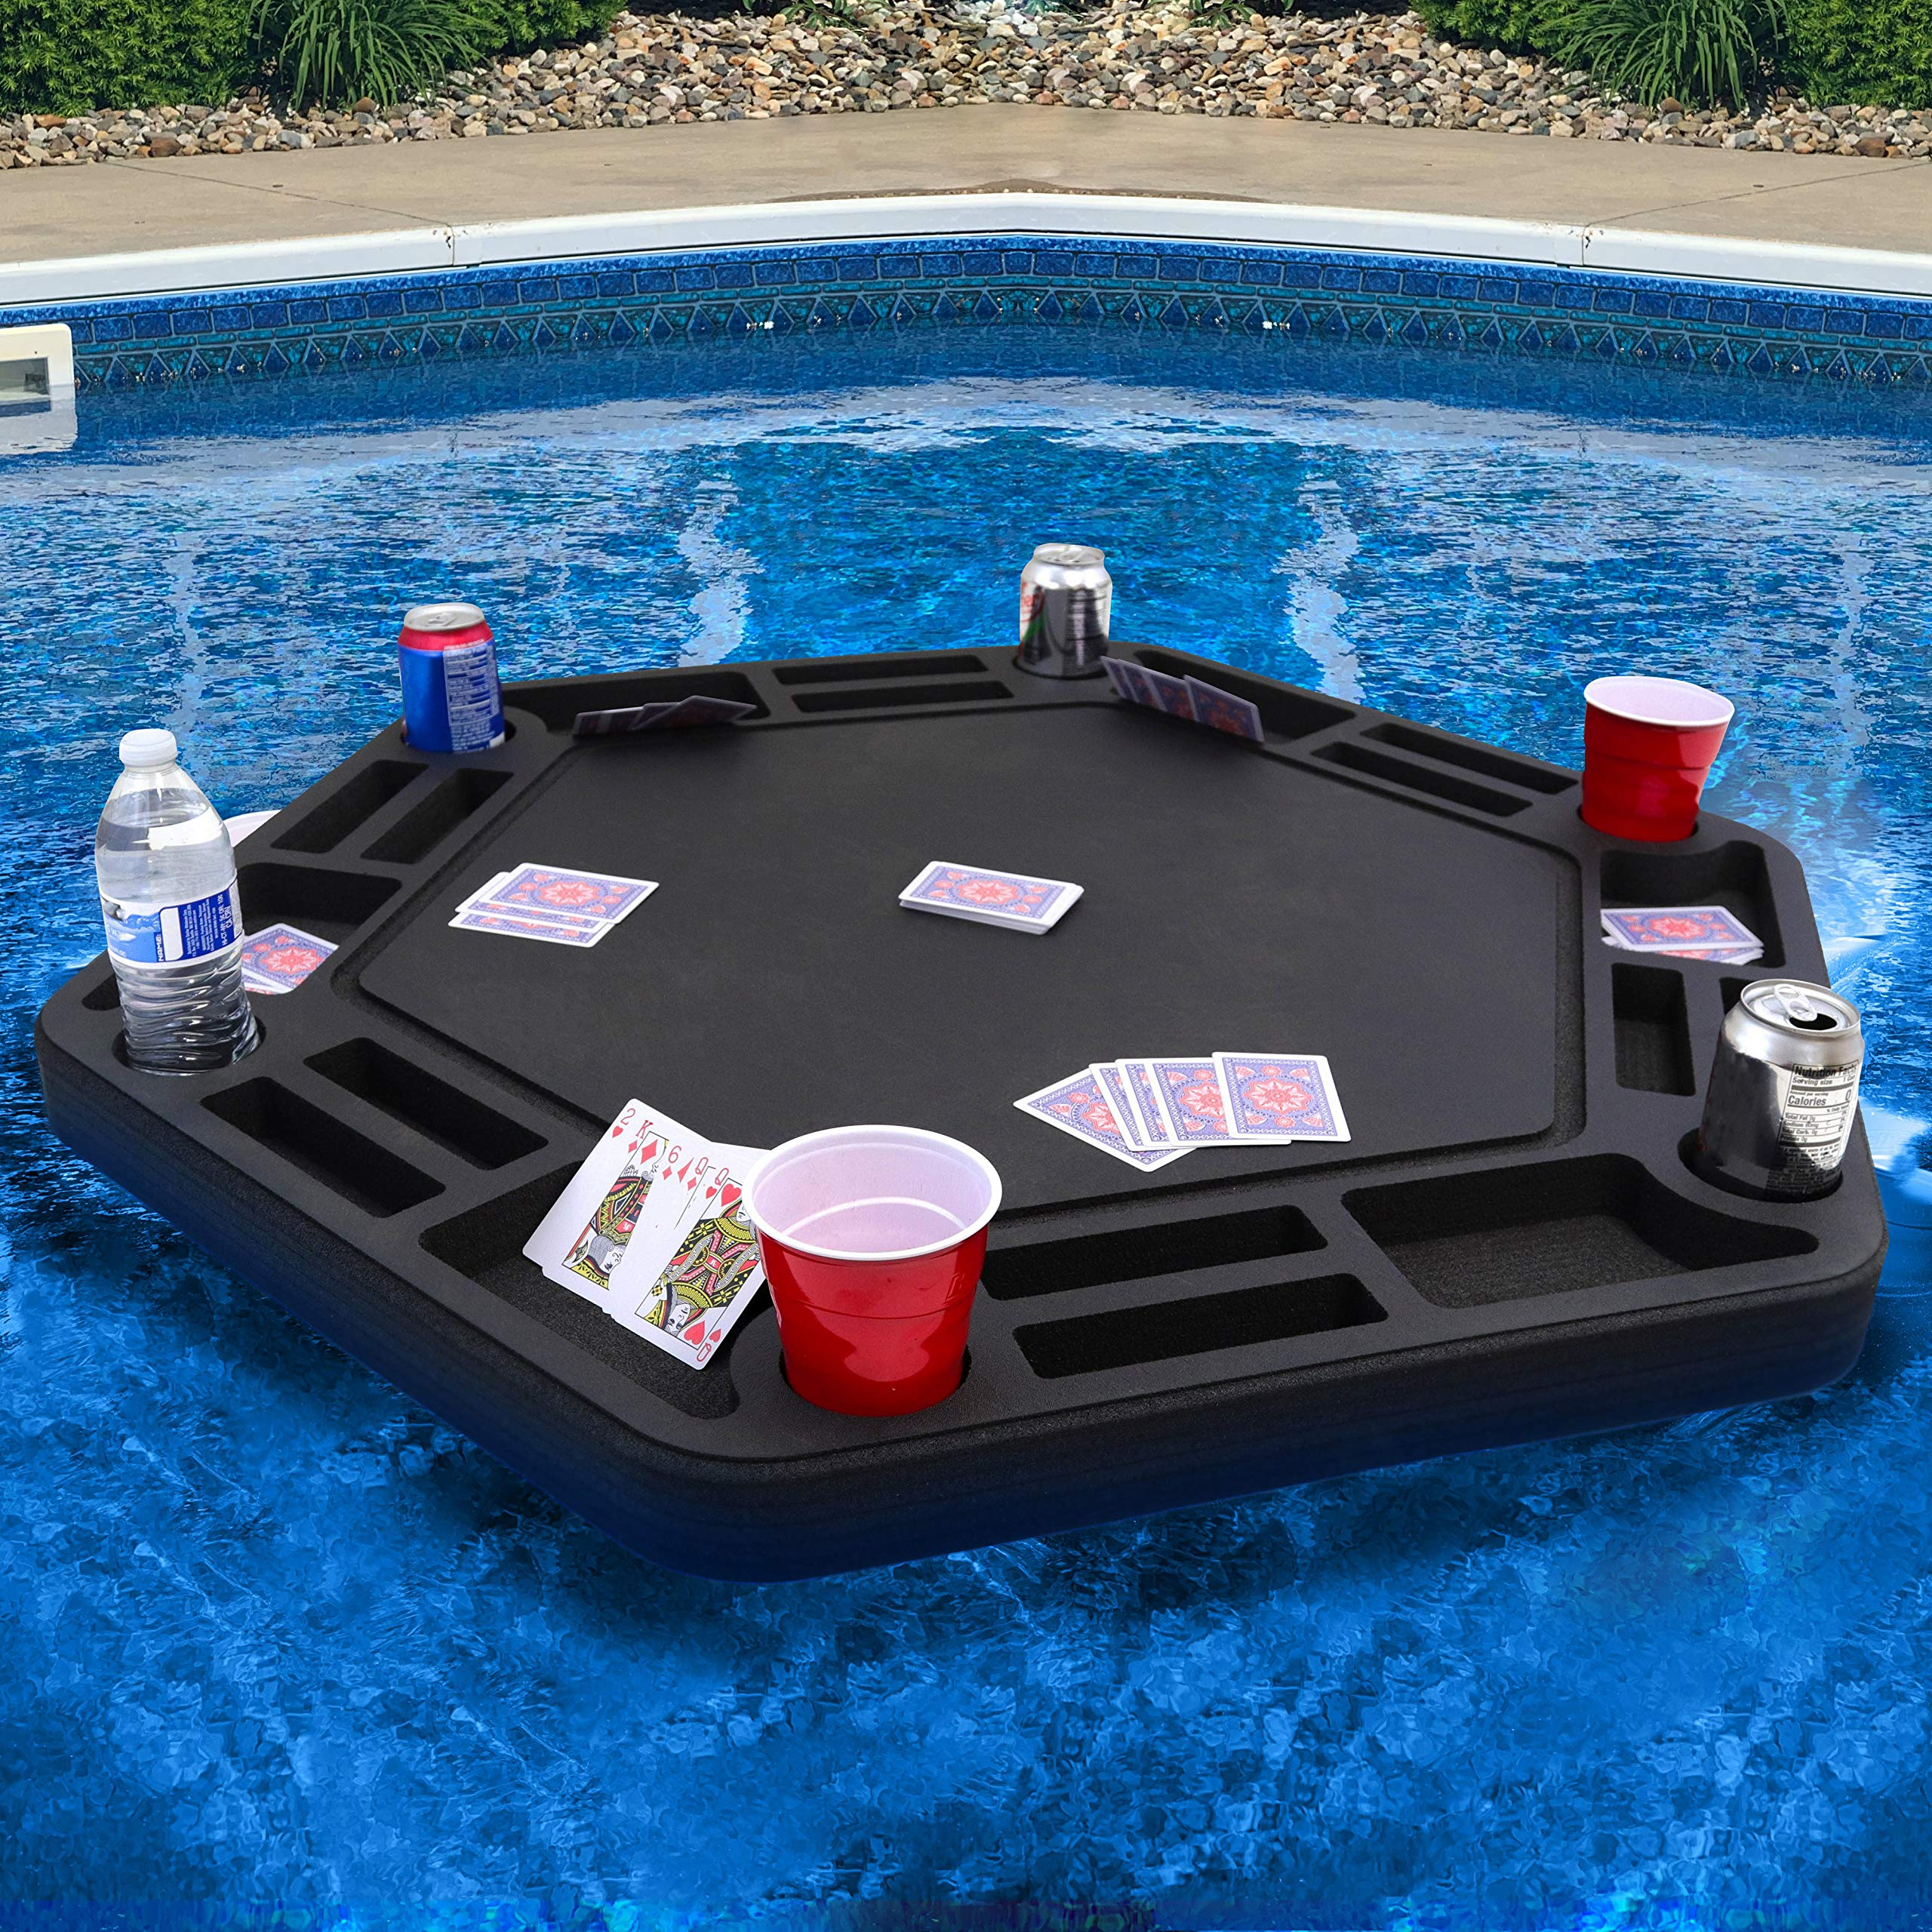 Polar Whale Floating Large Poker Table Game Tray for Pool or Beach Party Float Lounge Durable Foam 40.5 Inch Chip Slots Drink Holders with Waterproof Playing Cards Deck UV Resistant Made in USA by Polar Whale